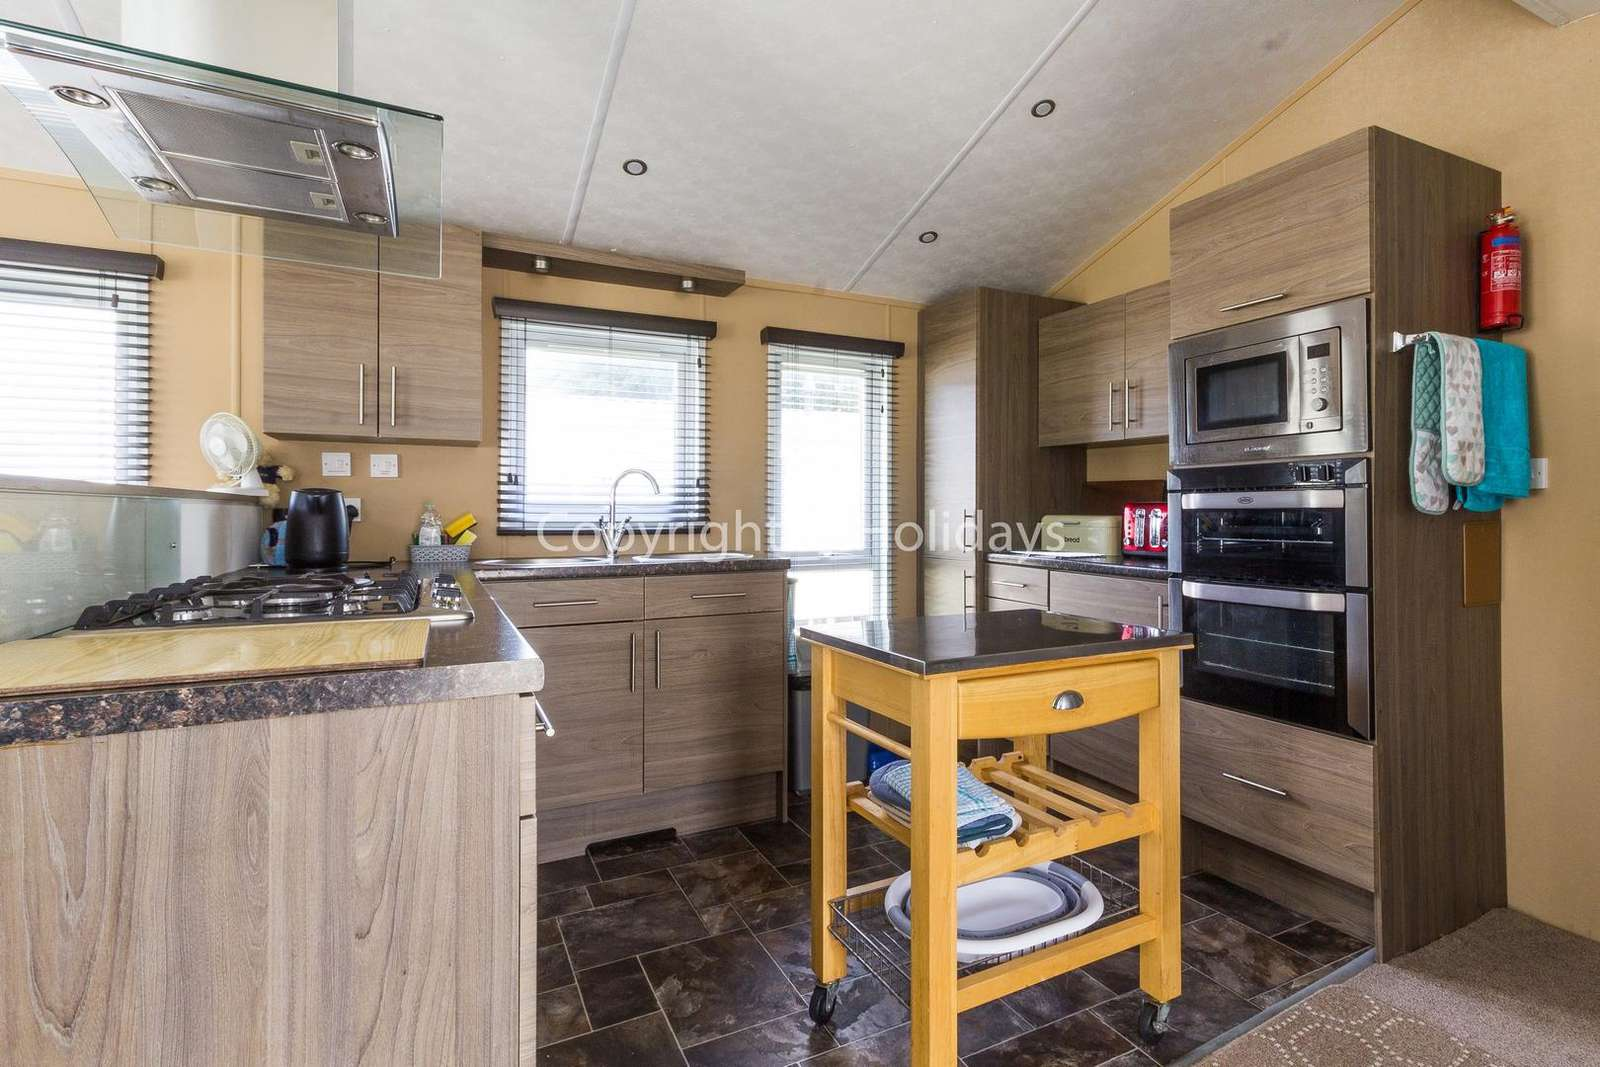 Fully equipped modern kitchen, perfect for self-catering holidays!